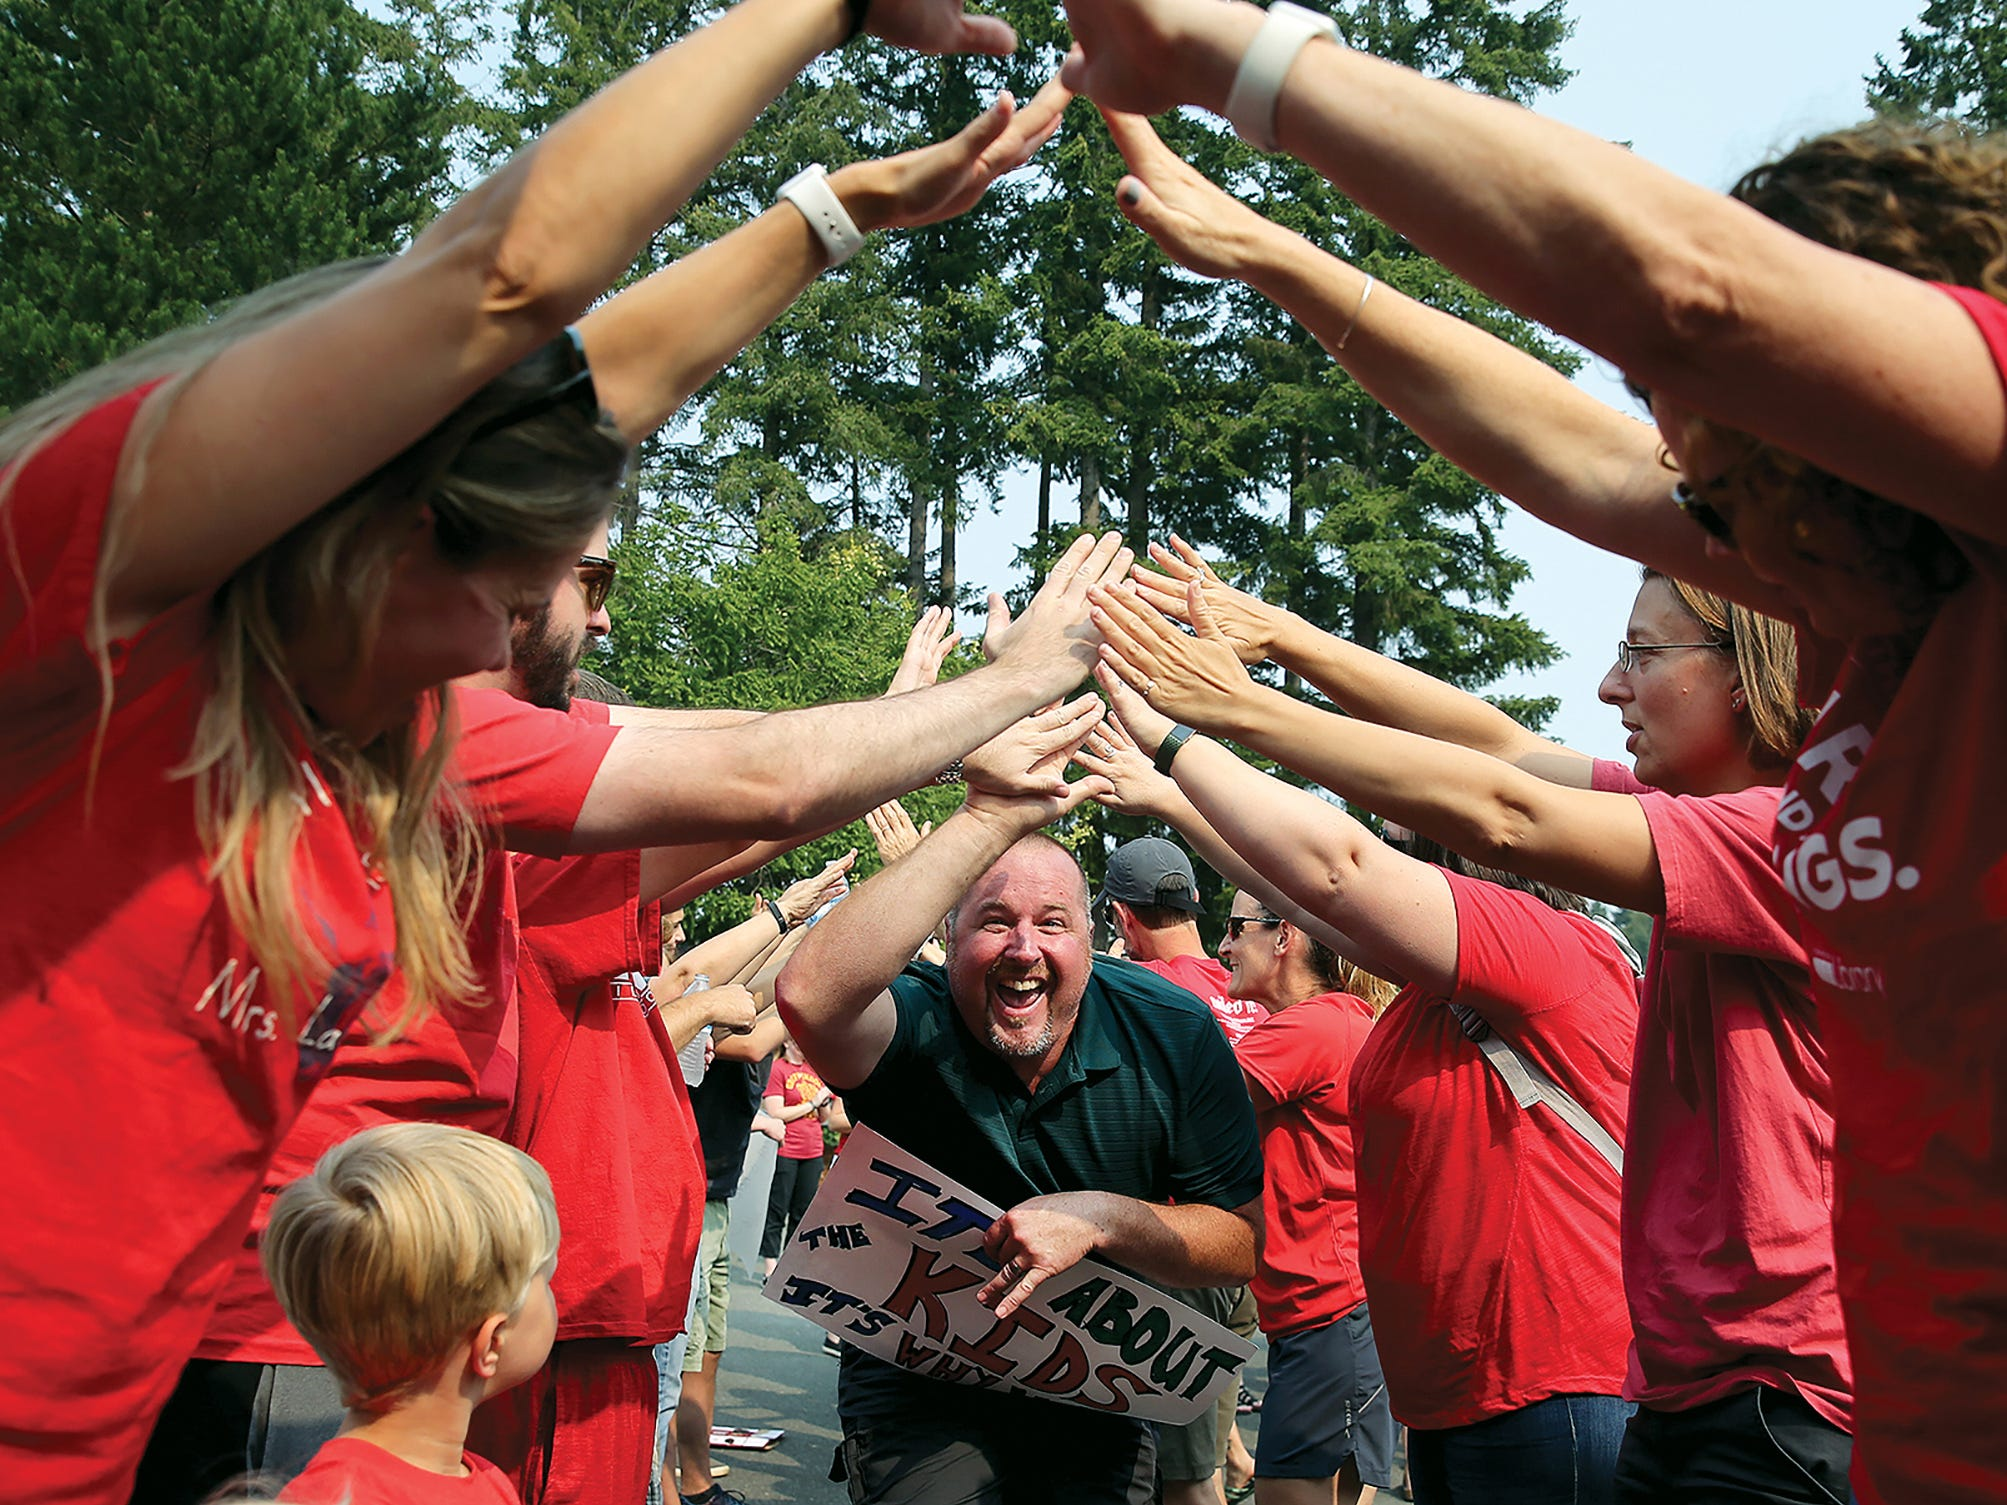 Kingston Middle School teacher Ted Jez goes through the tunnel gauntlet at the rally at the WEA headquarters in Poulsbo on Monday August, 13, 2018. Teachers in CKSD and NKSD rally as districts negotiate salary increases resulting from the McCleary decision. Bainbridge, with a 21 percent increase, got one of the highest salary bumps in the state. South Kitsap has reached a tentative agreement and negotiations are wrapping up in CK and NK. Bremerton will wrap up by the end of the month.